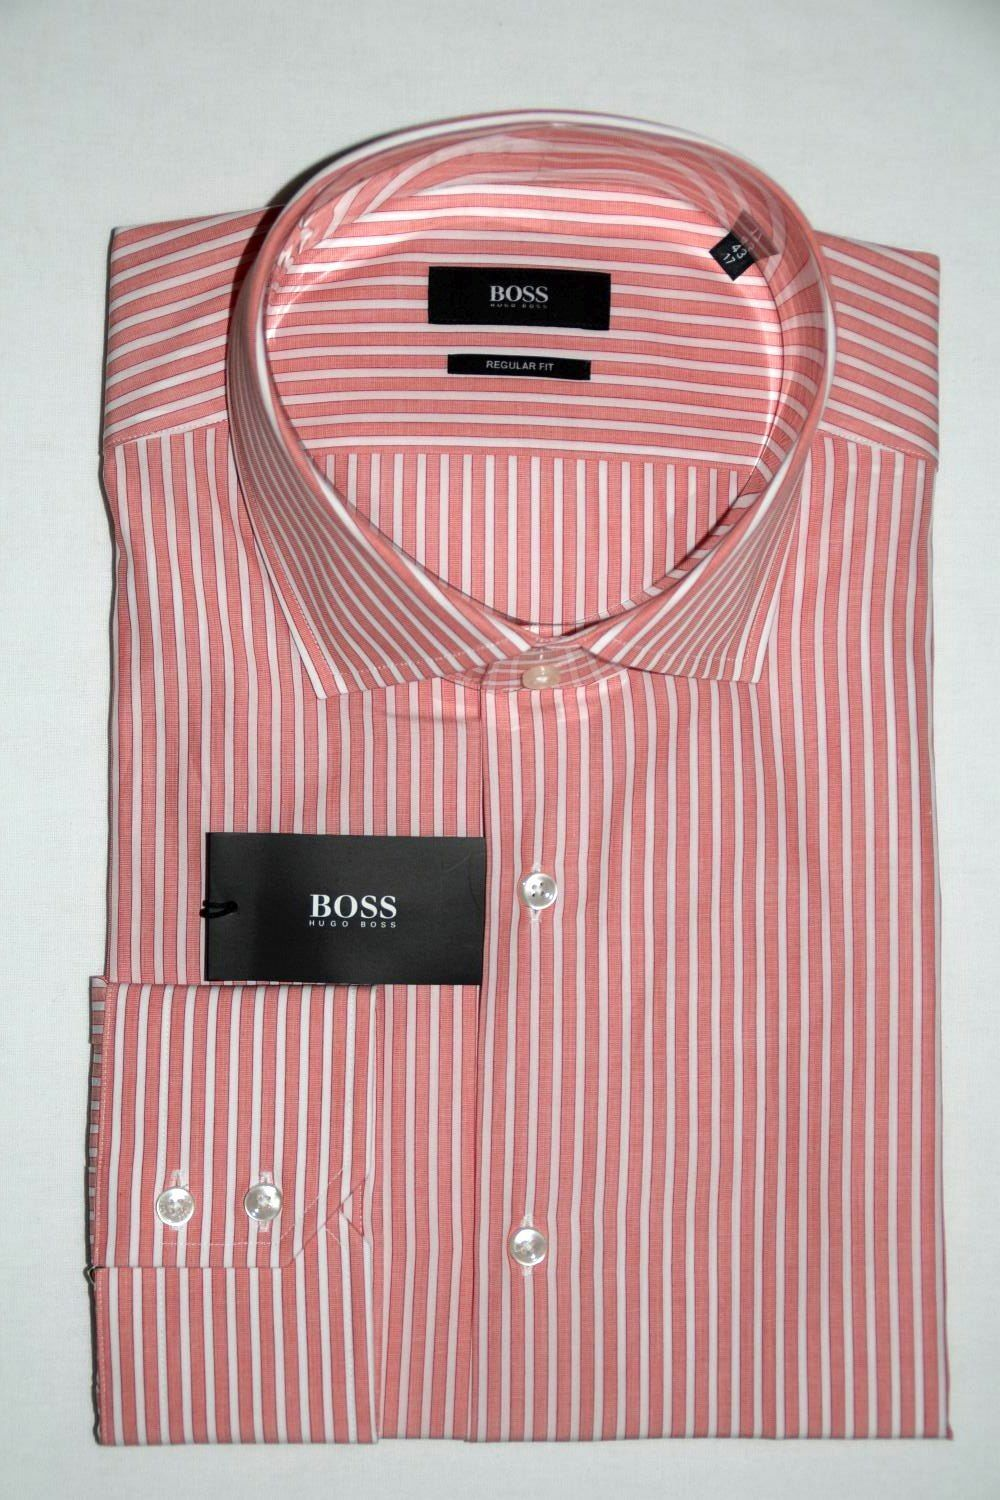 HUGO BOSS BUSINESSHEMD, Mod. Gordon, Gr. 43, Regular Fit, Medium Orange